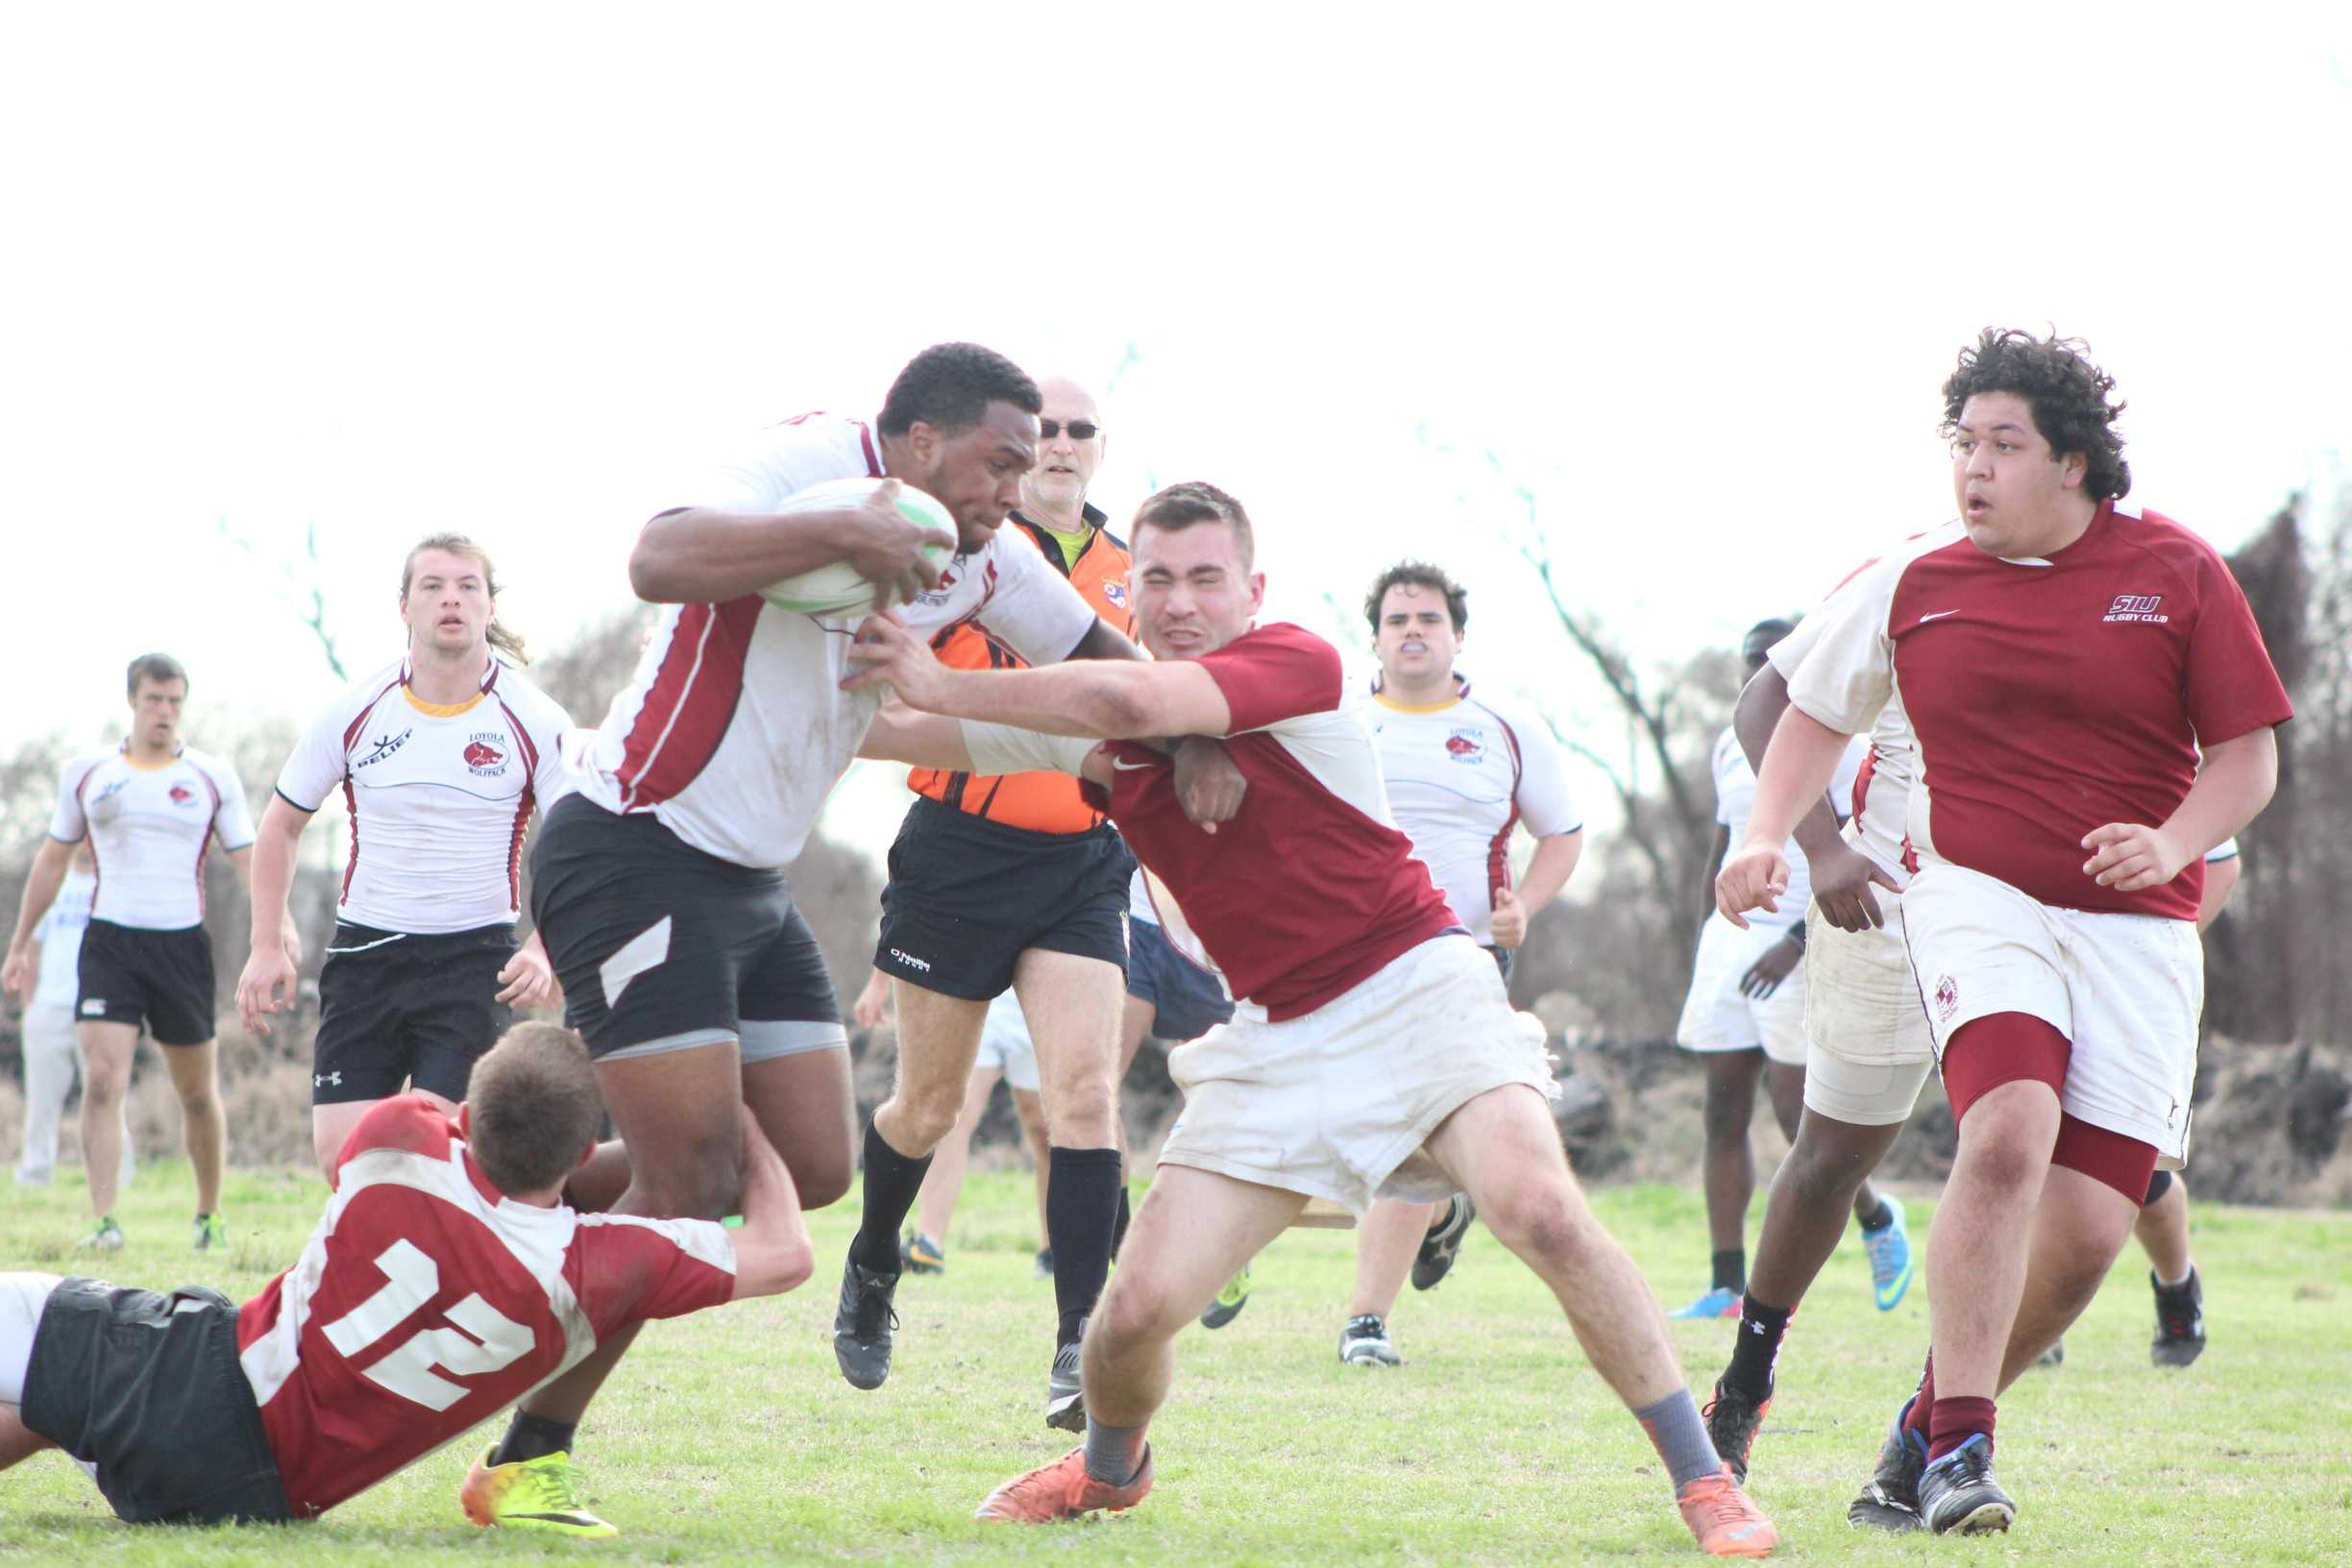 Shawn Maheia blocks a tackle against a defender from Southern Illinois. They won the weekend tournament put on by the New Orleans Rugby Football Club. The team travels to Florida for the second round of the tournament.